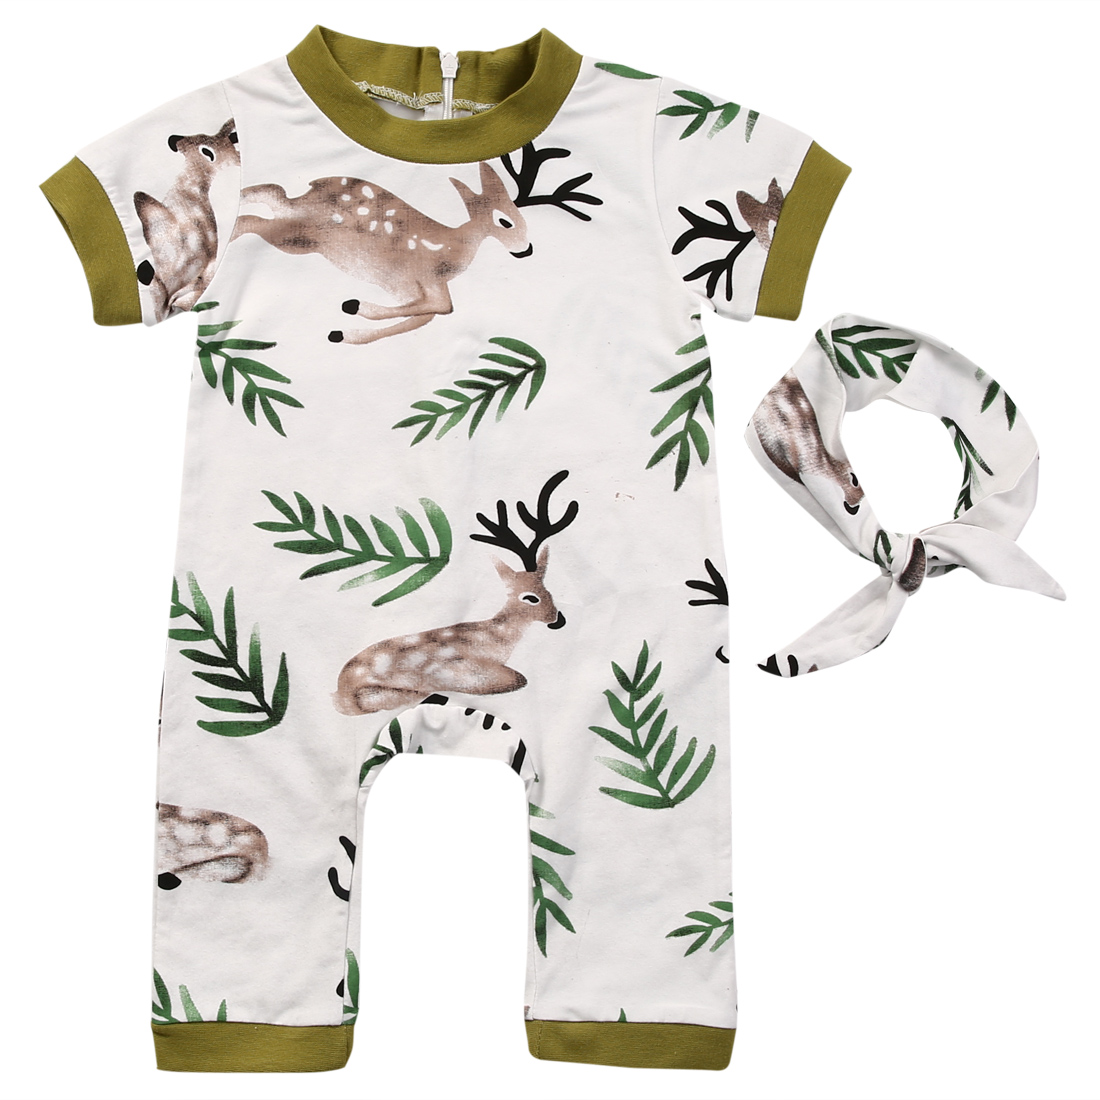 Cute Newborn Baby Romper Clothes 0-24M Short Sleeve Bebes Bodysuit Jumpsuit Deer Zipper Sunsuit +Headband 2PCS Outfit Tracksuit cute newborn infant baby girl clothes set girls romper letter printed bodysuit floral tutu skirted bloomers short outfit sunsuit